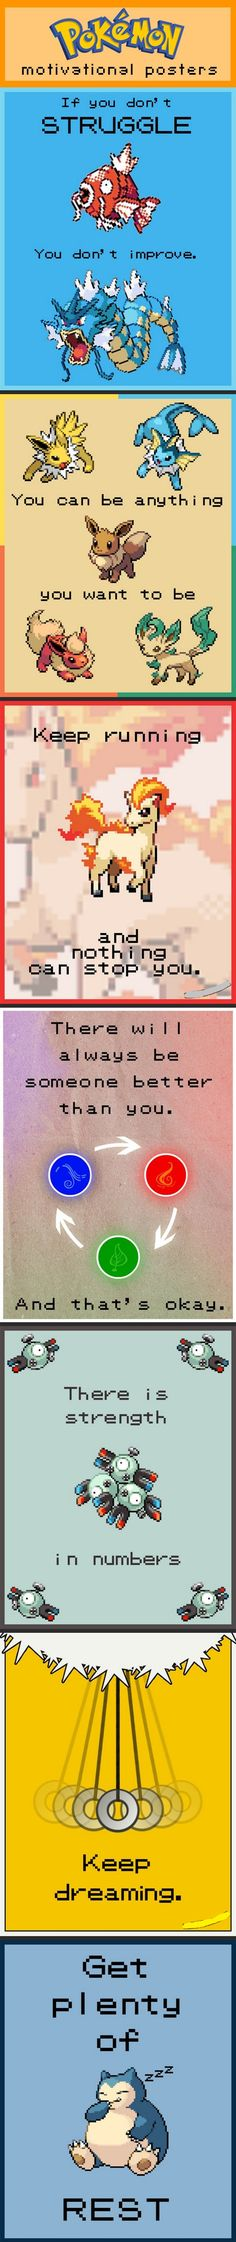 Motivation, brought to you by Pokemon.